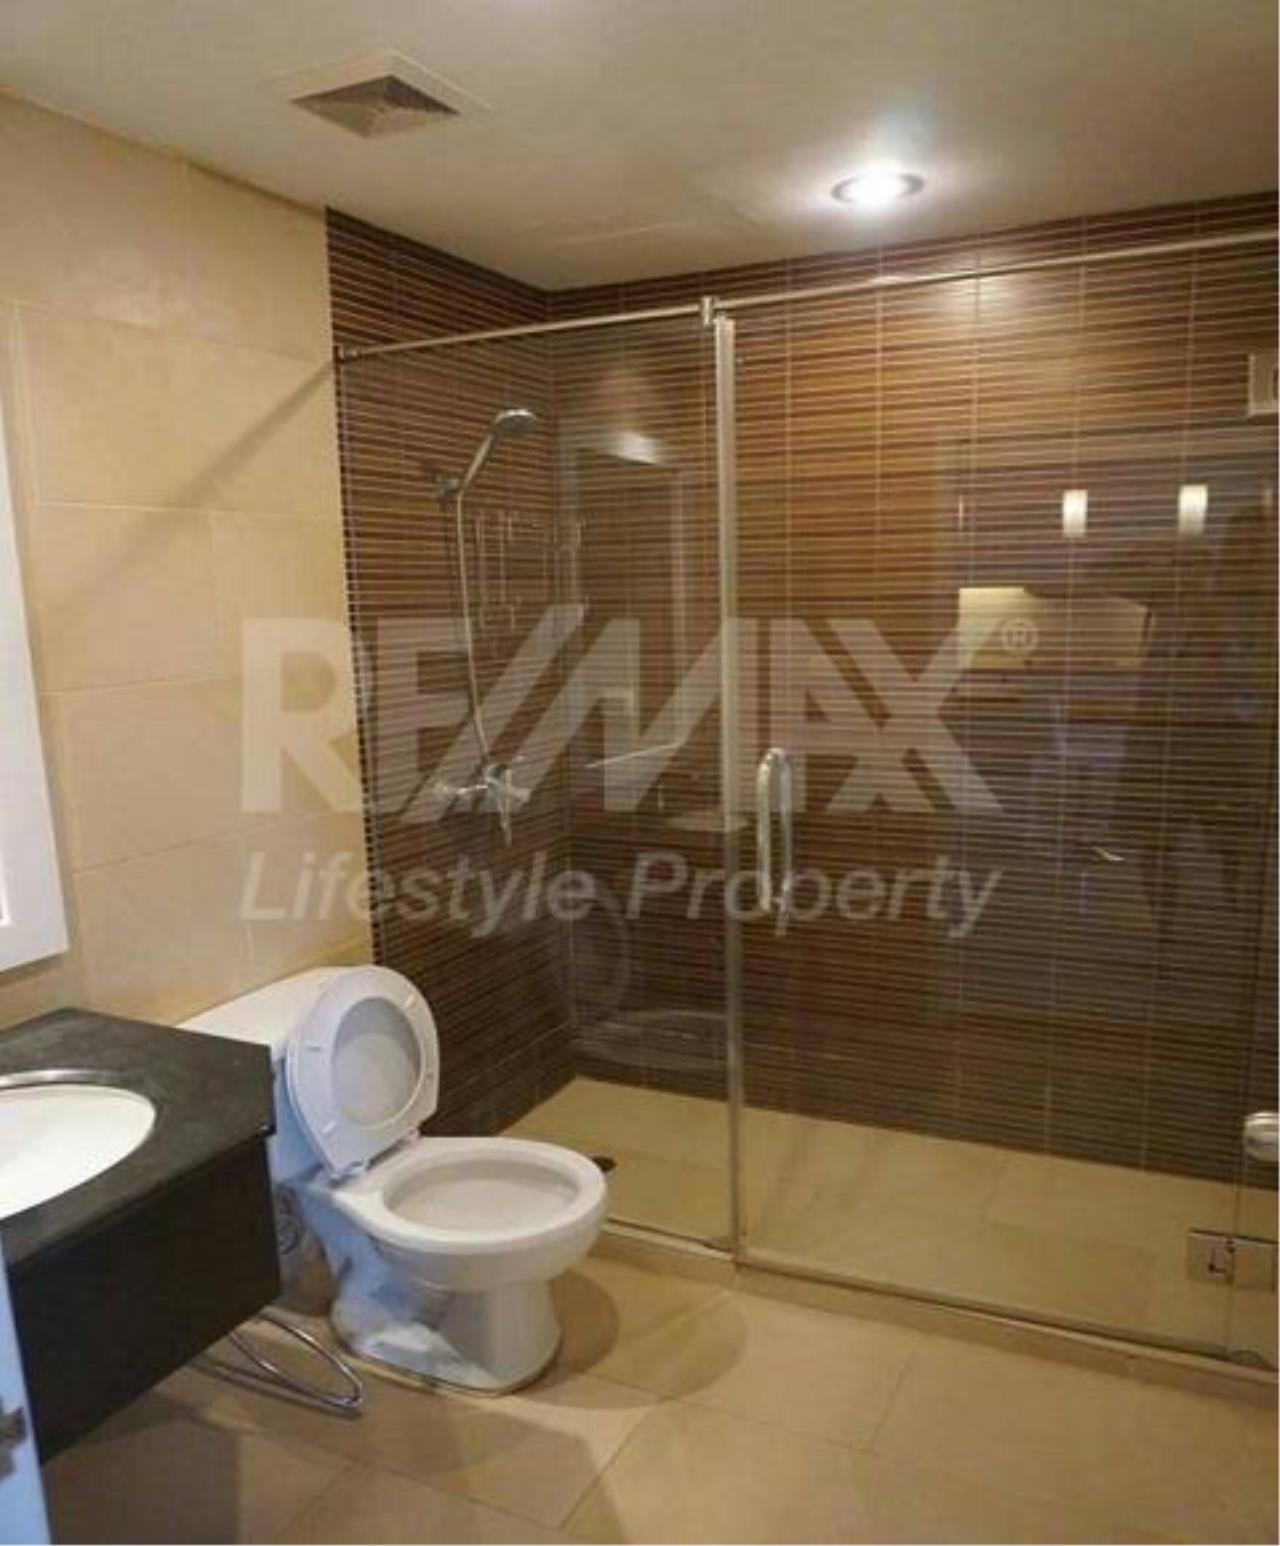 RE/MAX LifeStyle Property Agency's Wittayu Complex 8